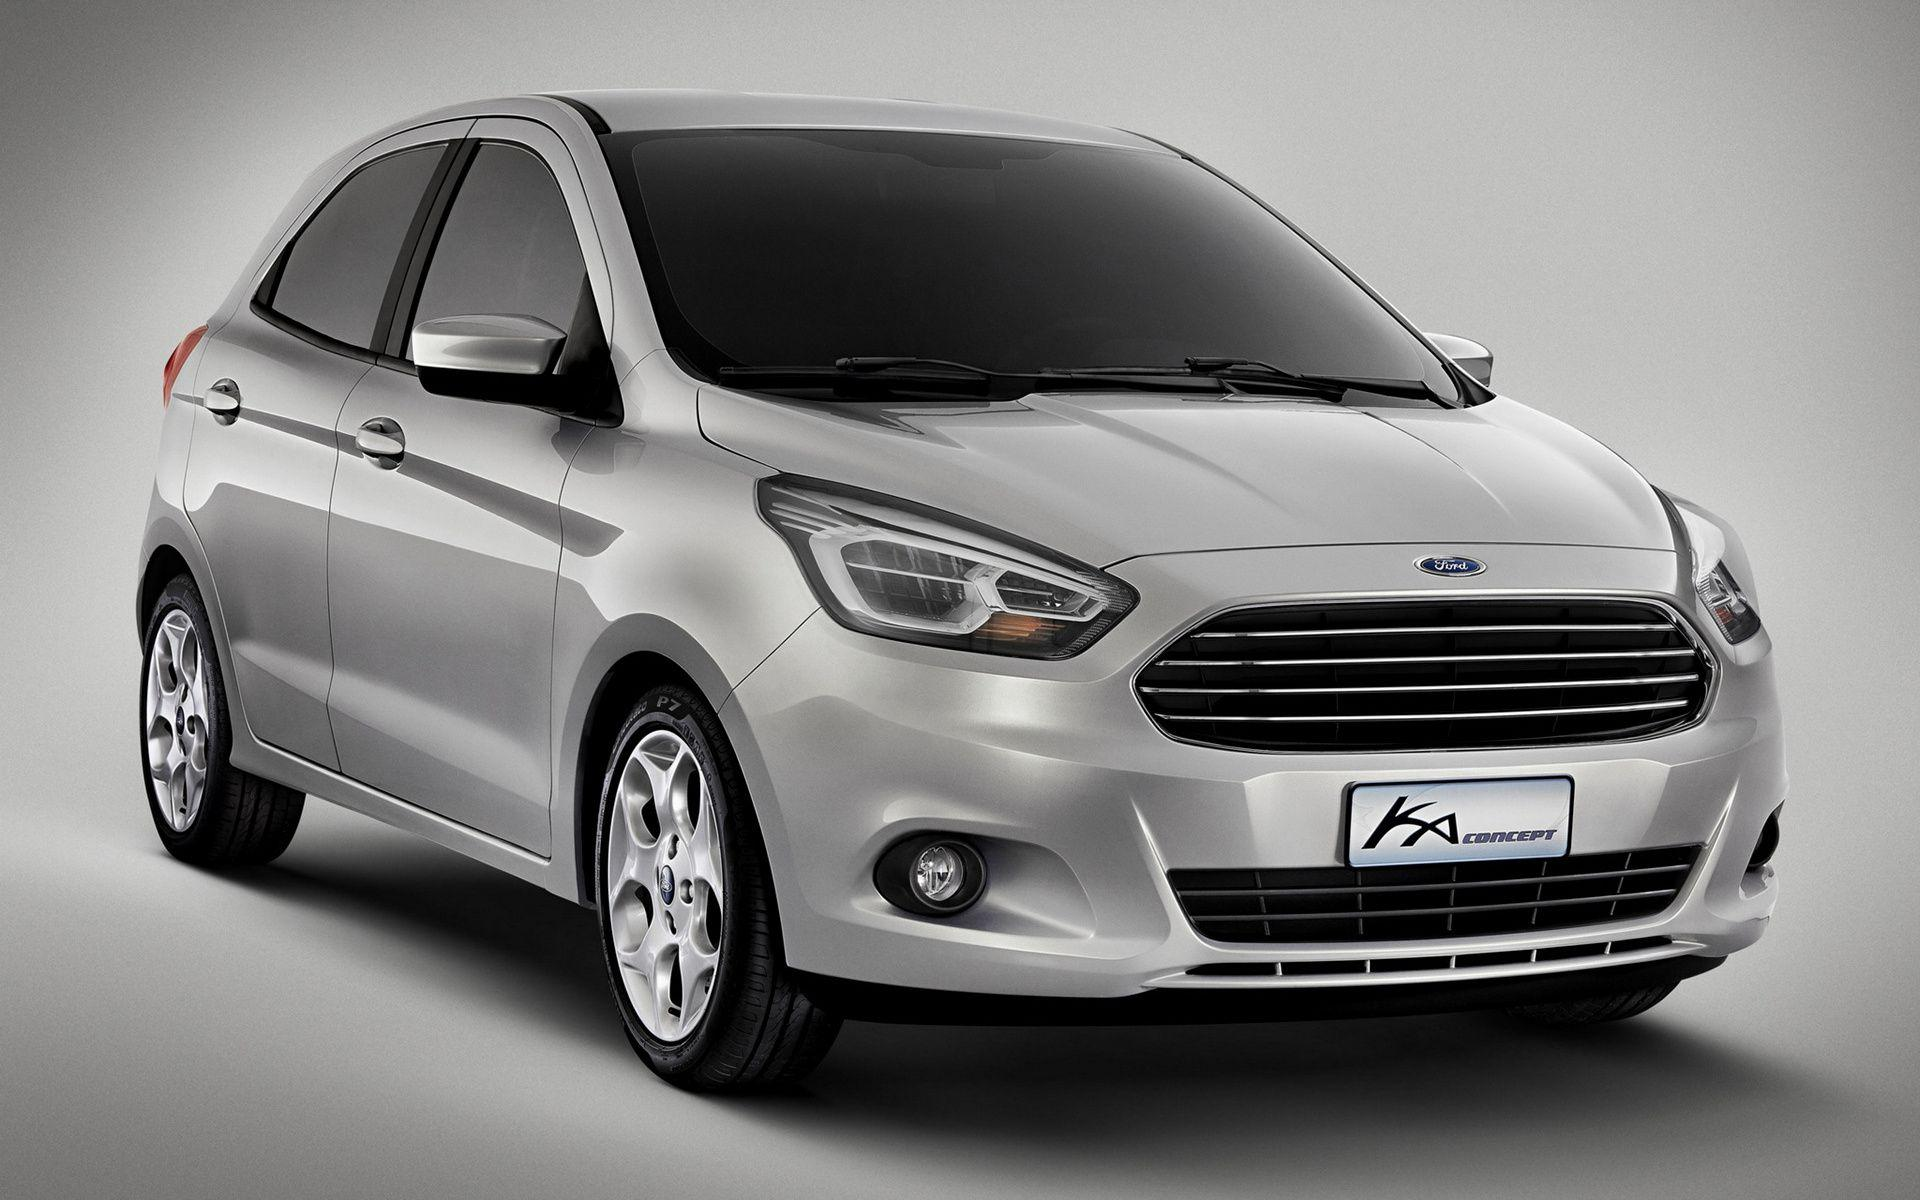 Ford Ka Concept (2013) Wallpapers and HD Images - Car Pixel